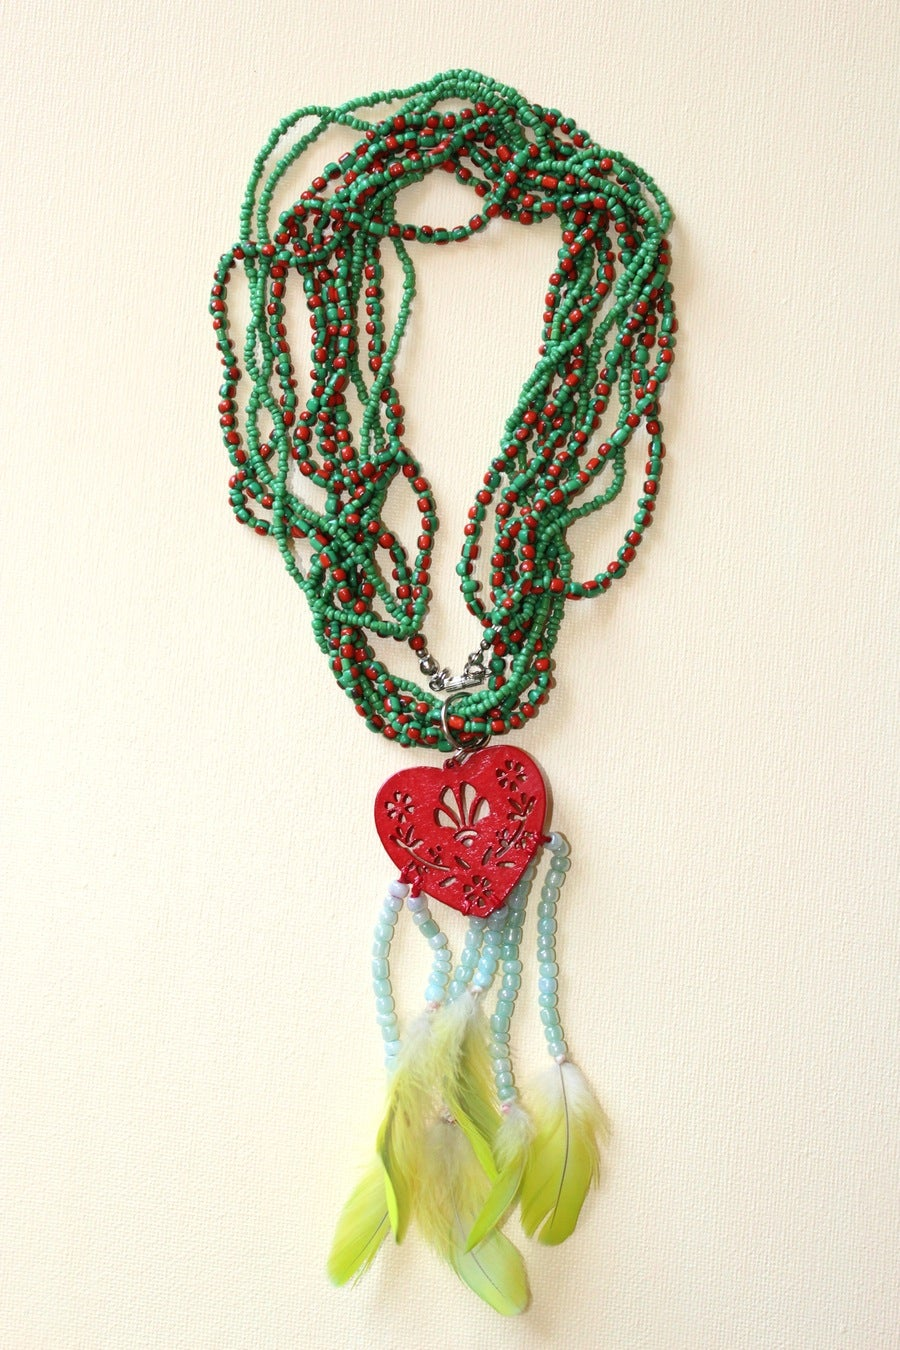 Image of Necklace - Tassel & Genuine Amazon Parrot feathers